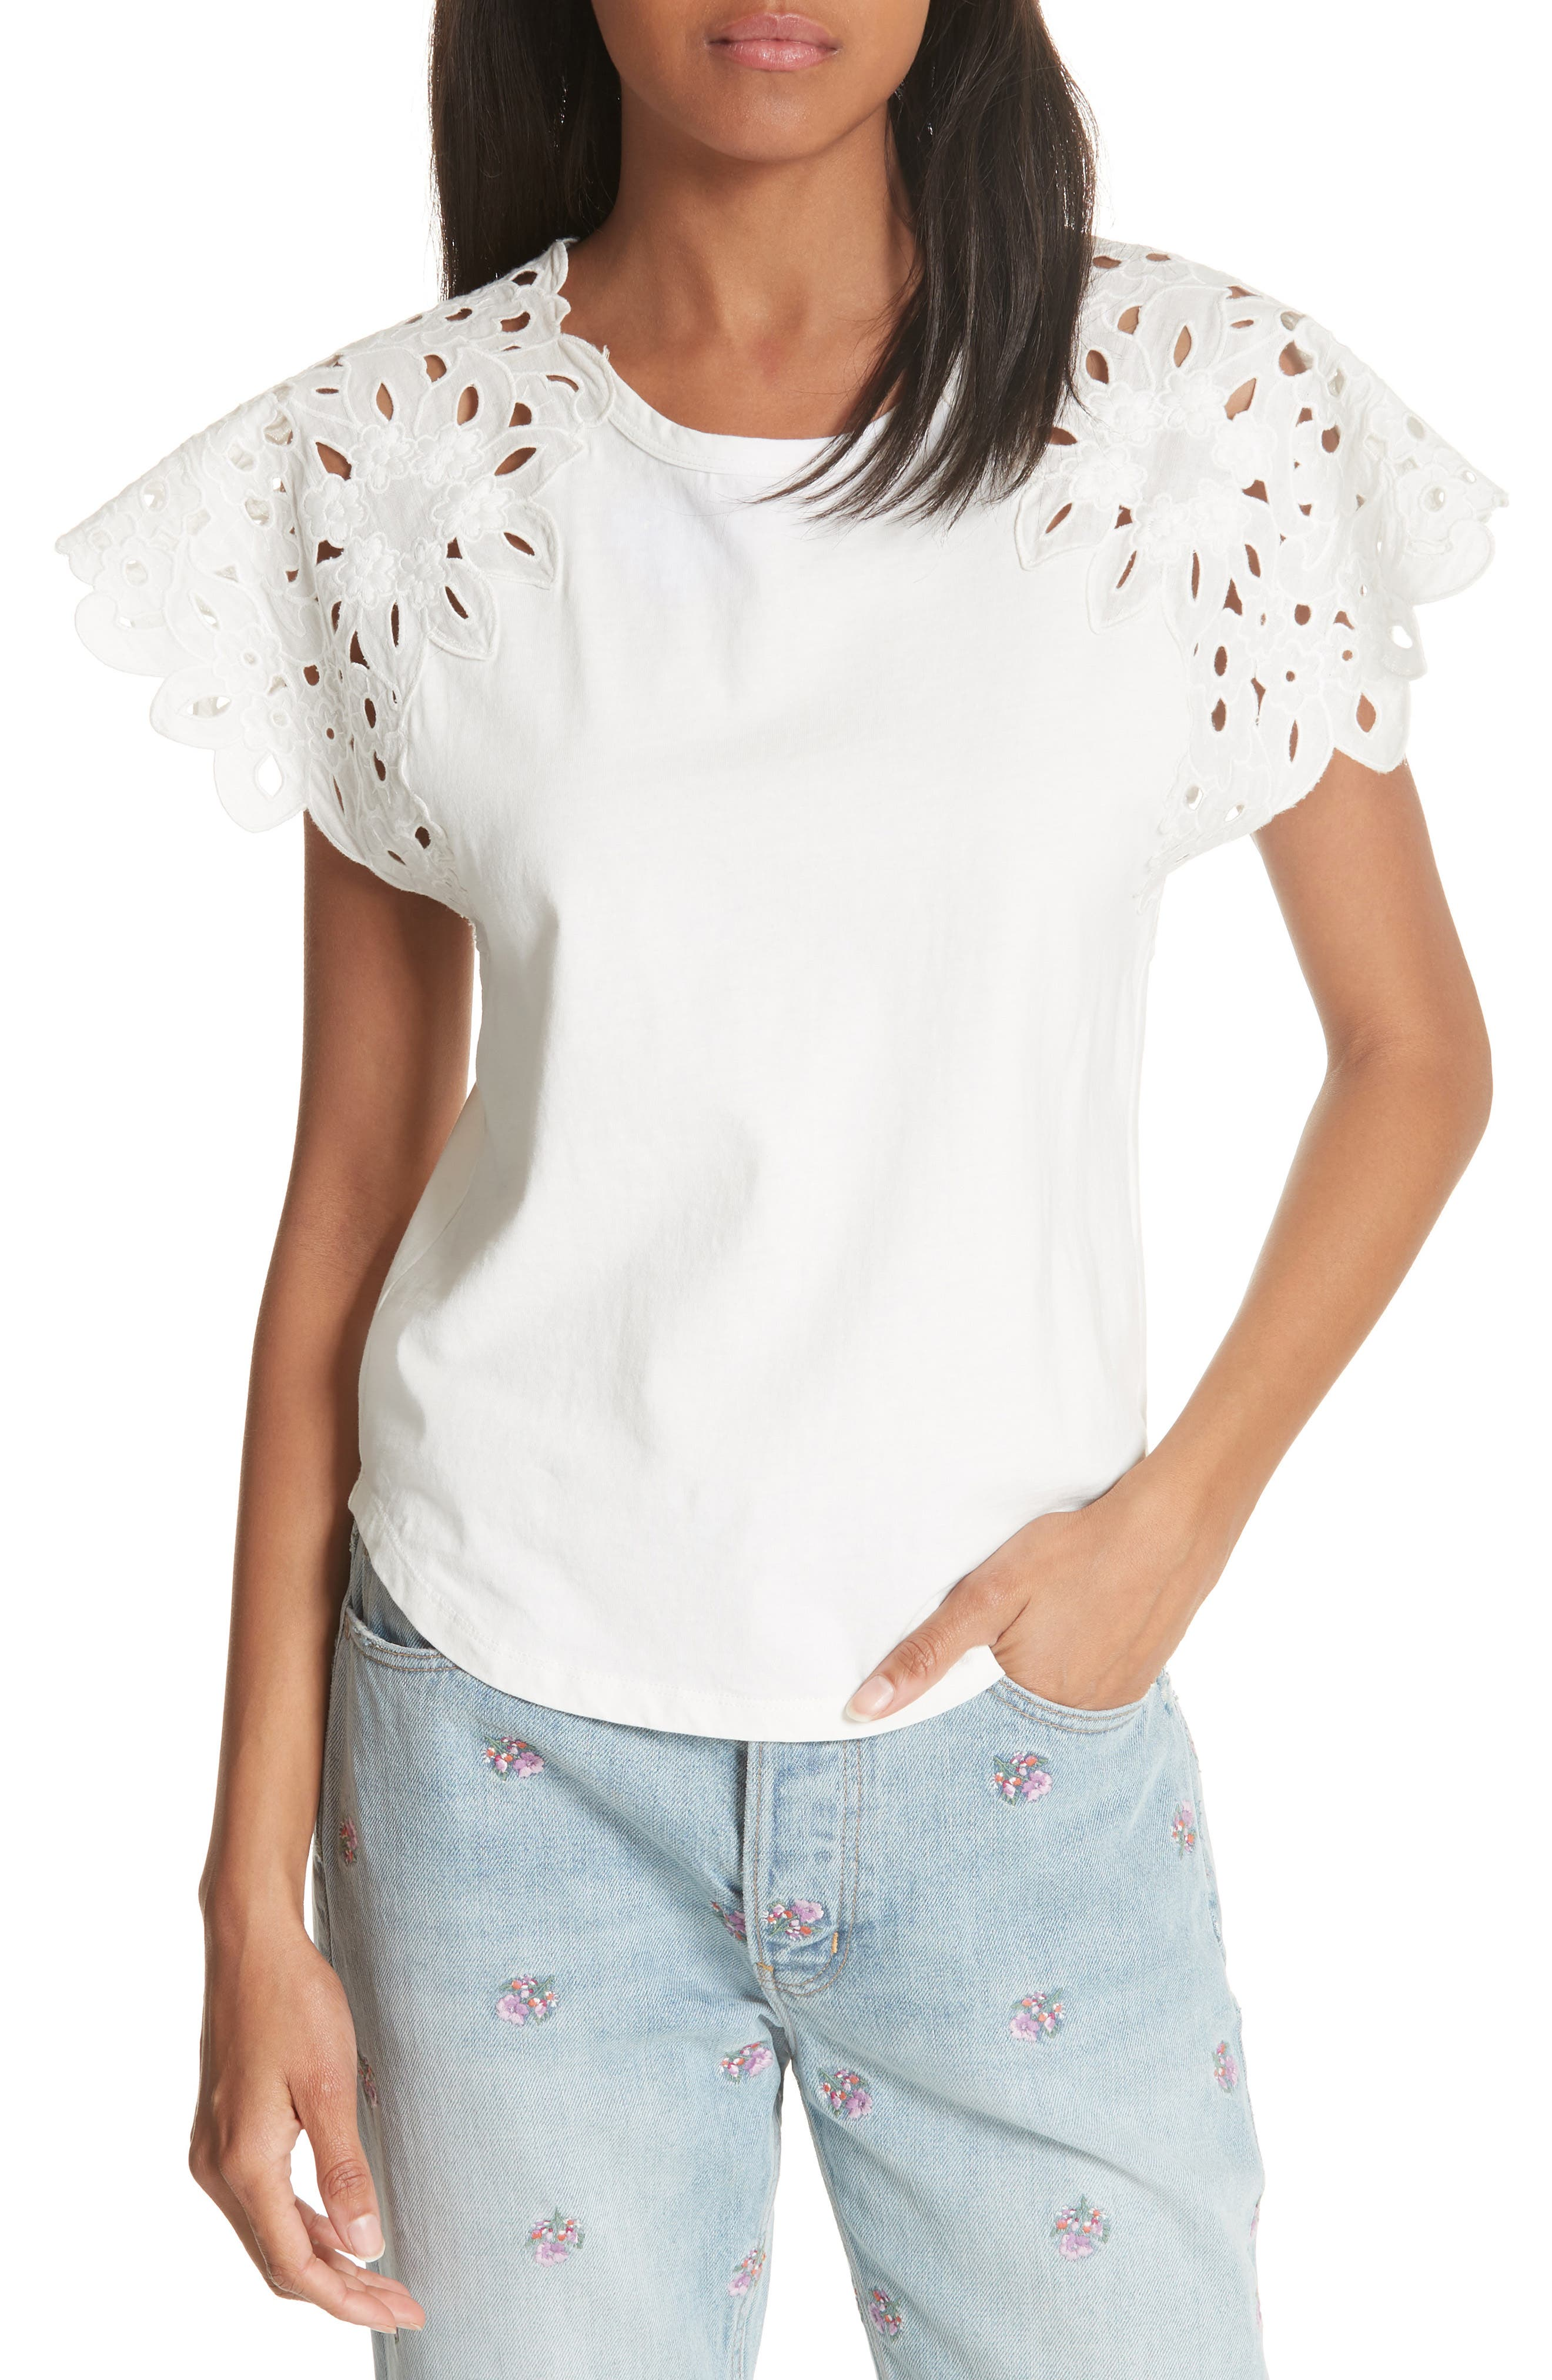 La Vie Rebecca Taylor Embroidery Sleeve Cotton Top